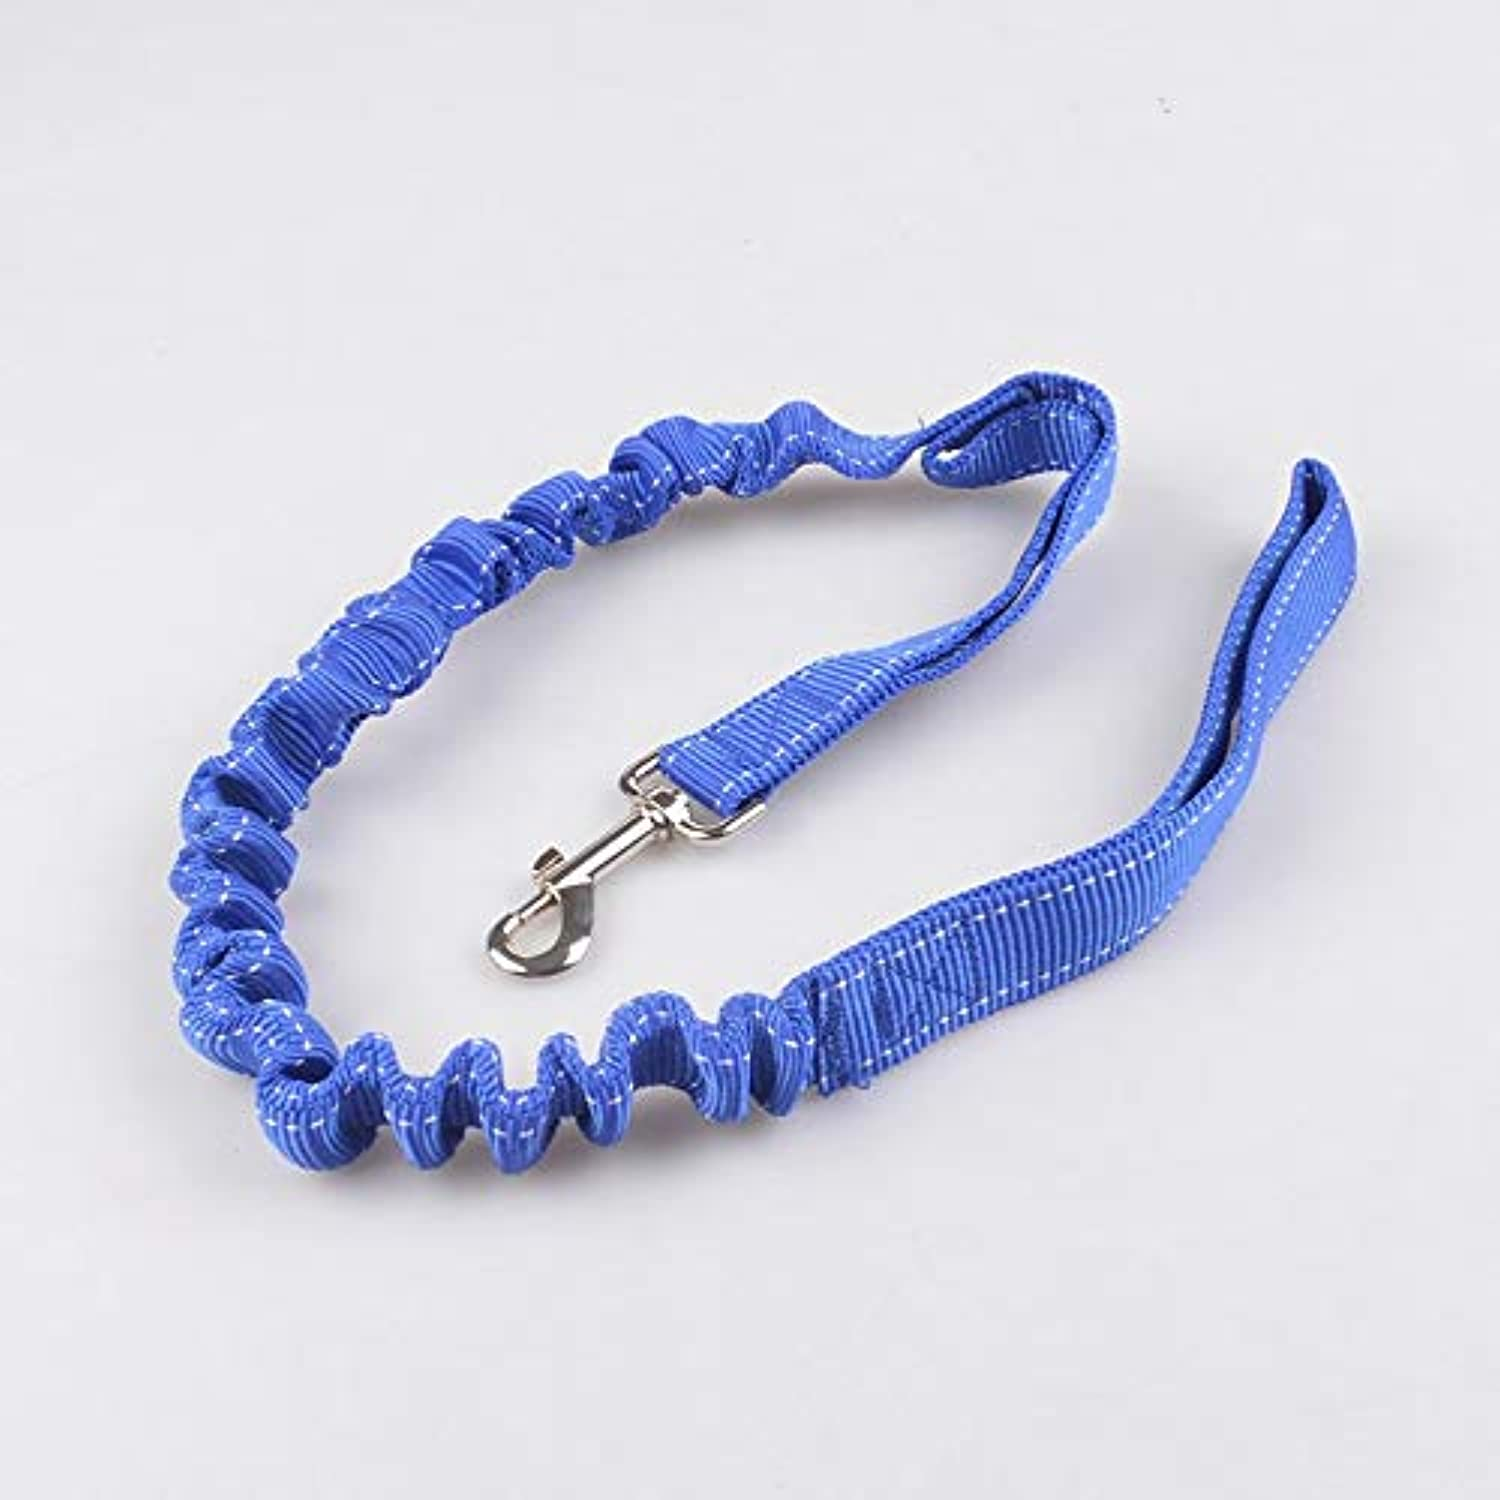 Pet Online Pet Supplies Cushioning Telescopic Traction Rope Large and Medium Dog Nylon Reflective Dog Chain,bluee